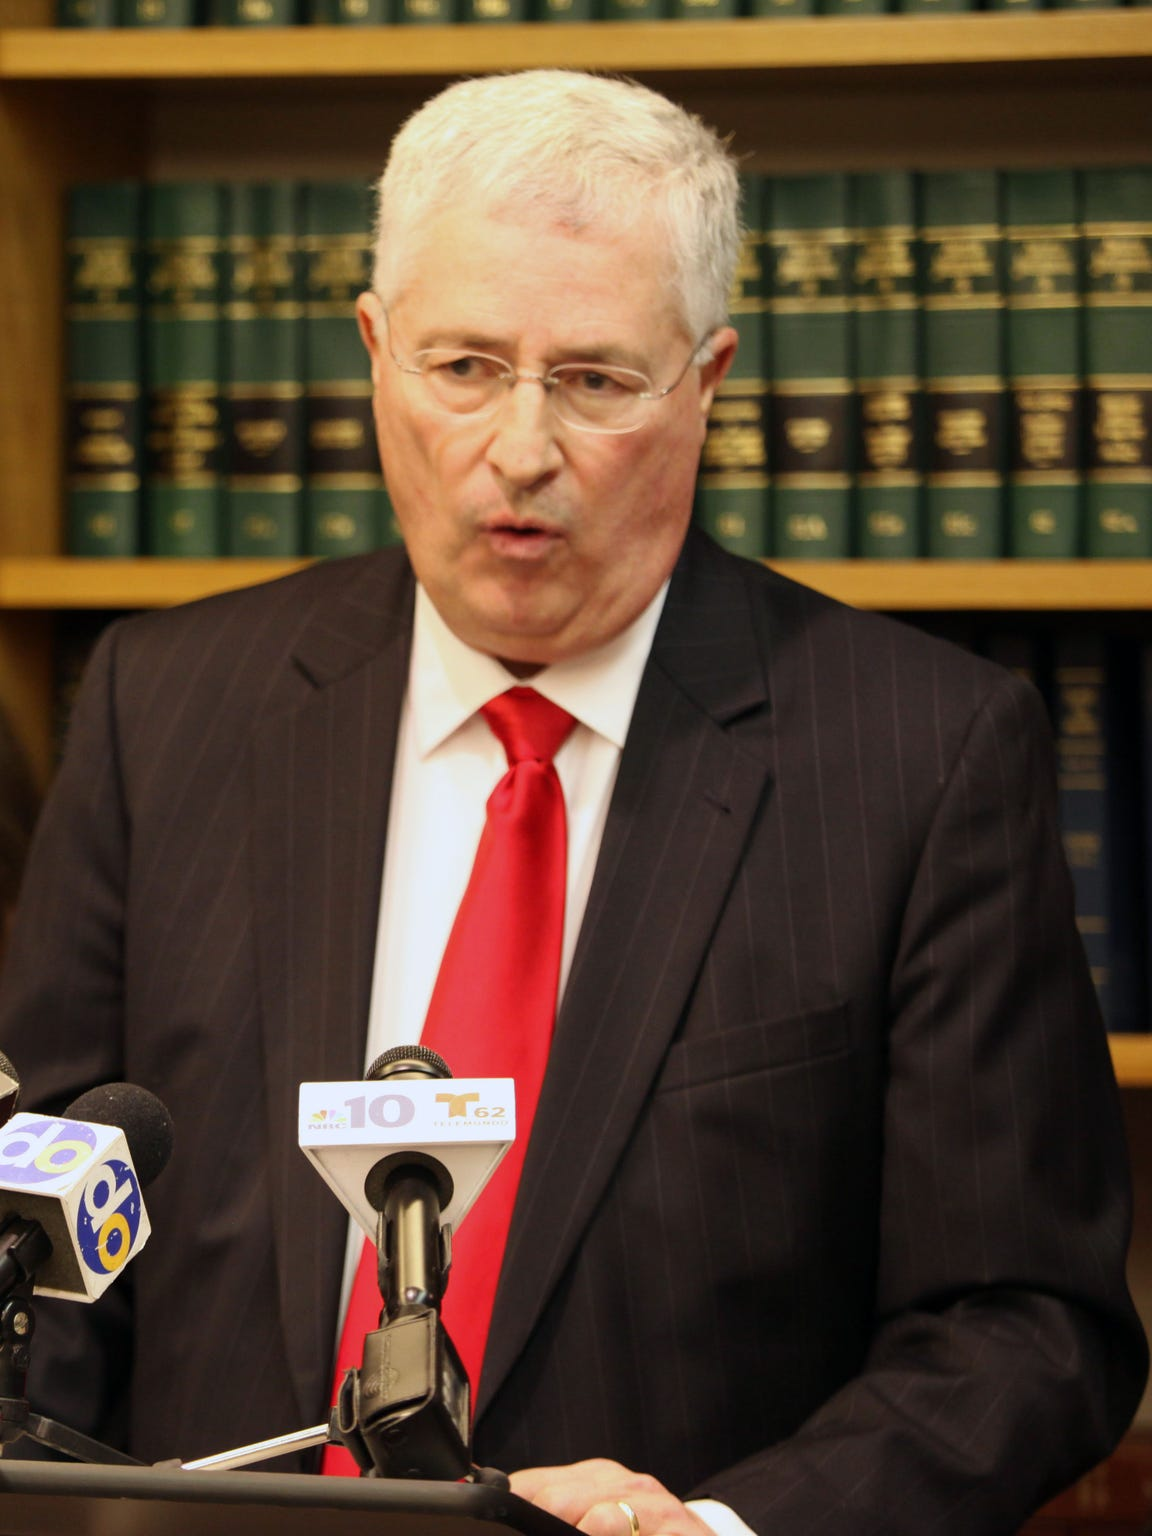 Attorney Thomas Neuberger during a press conference.